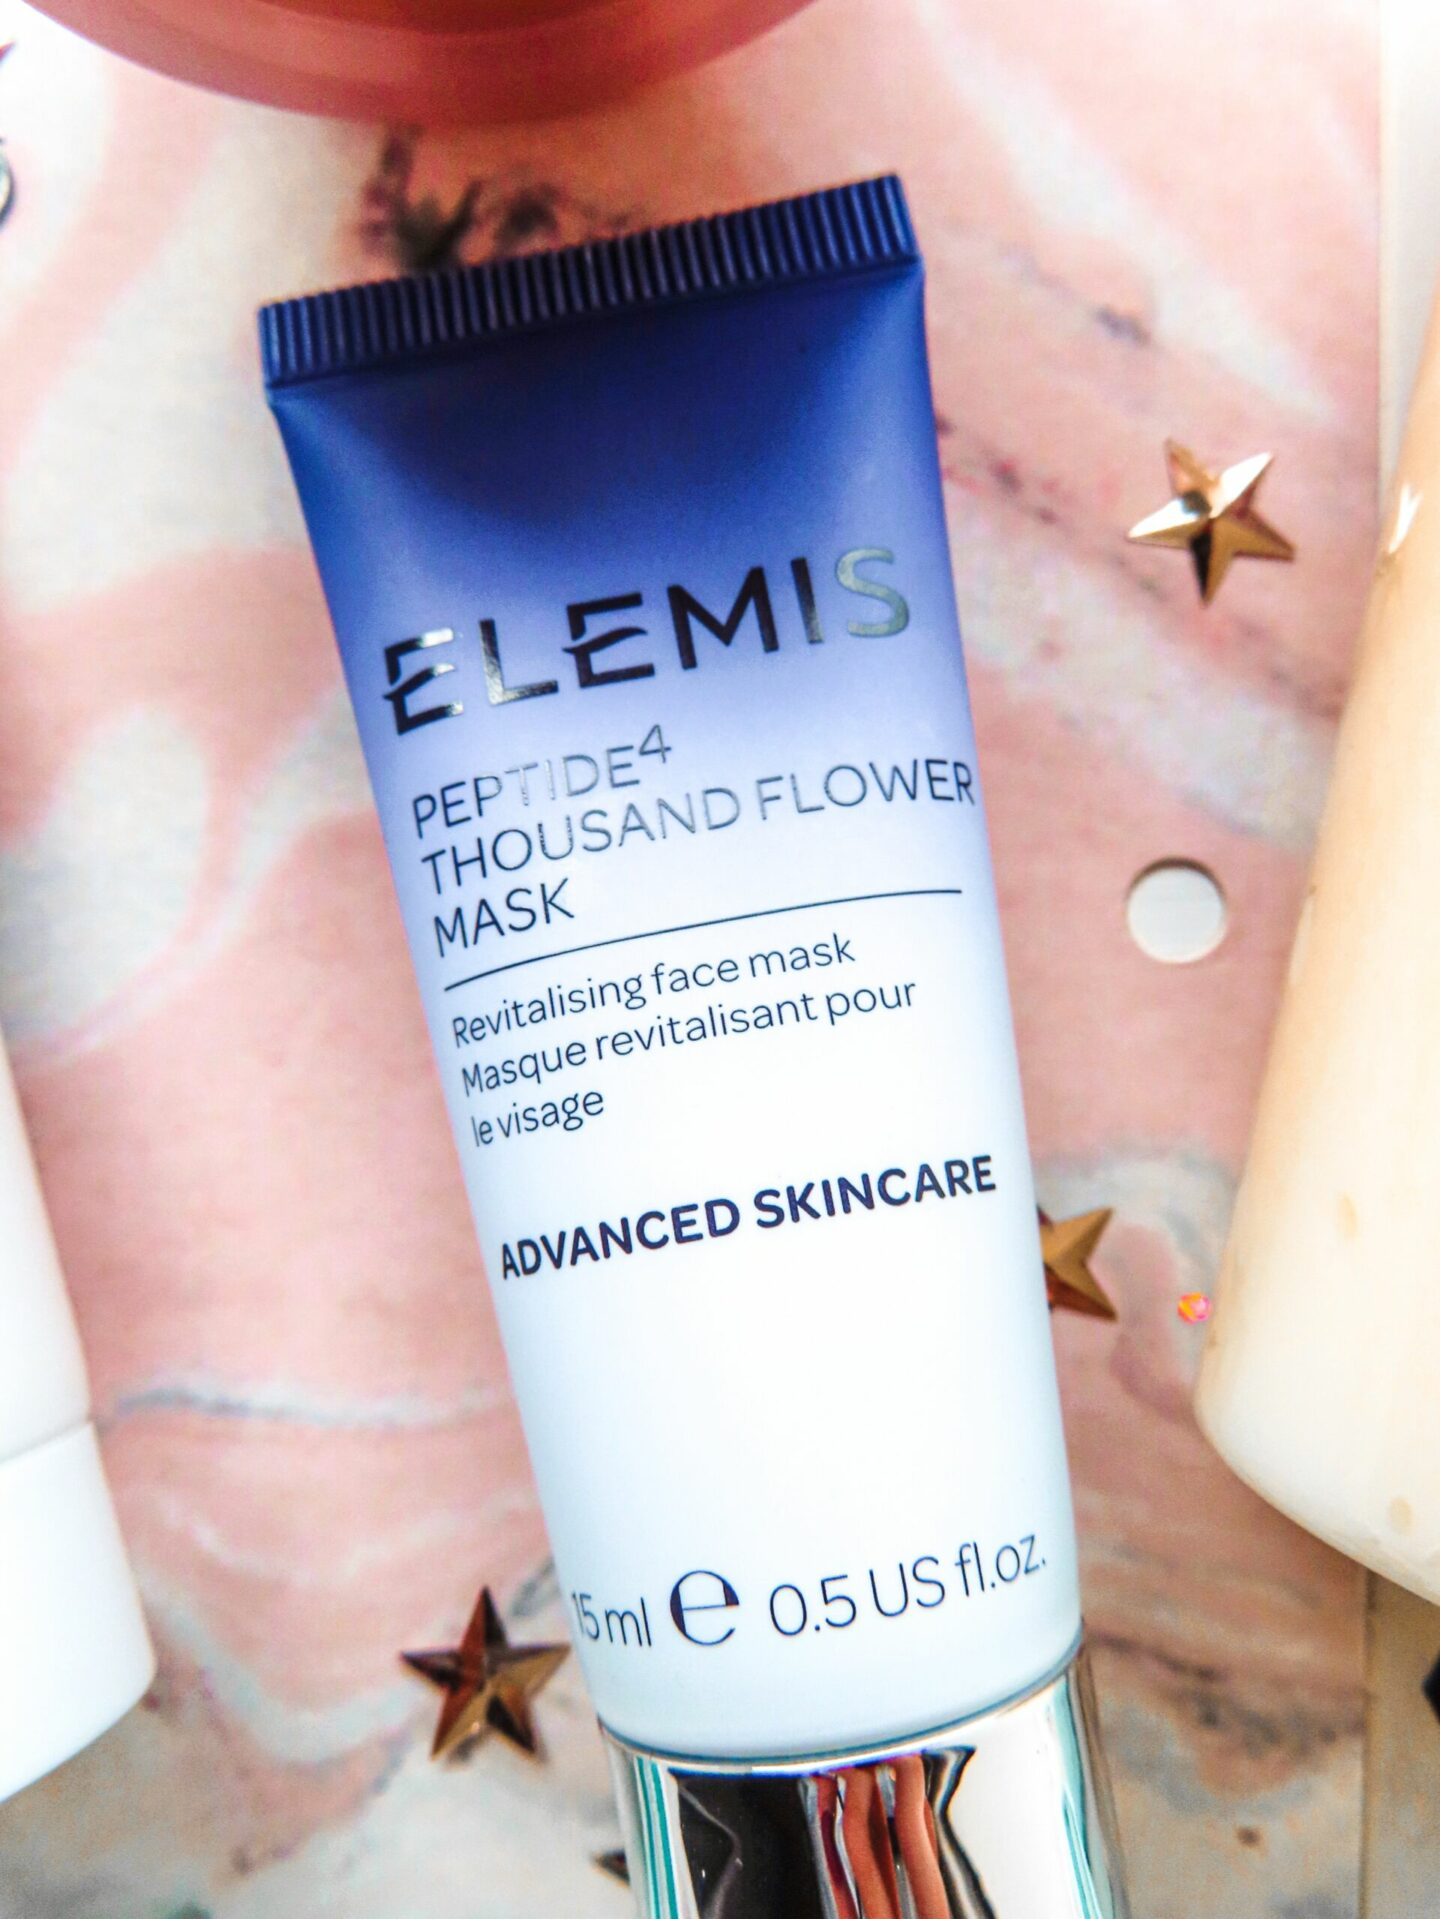 Elemis Peptide Thousand Flower Mask